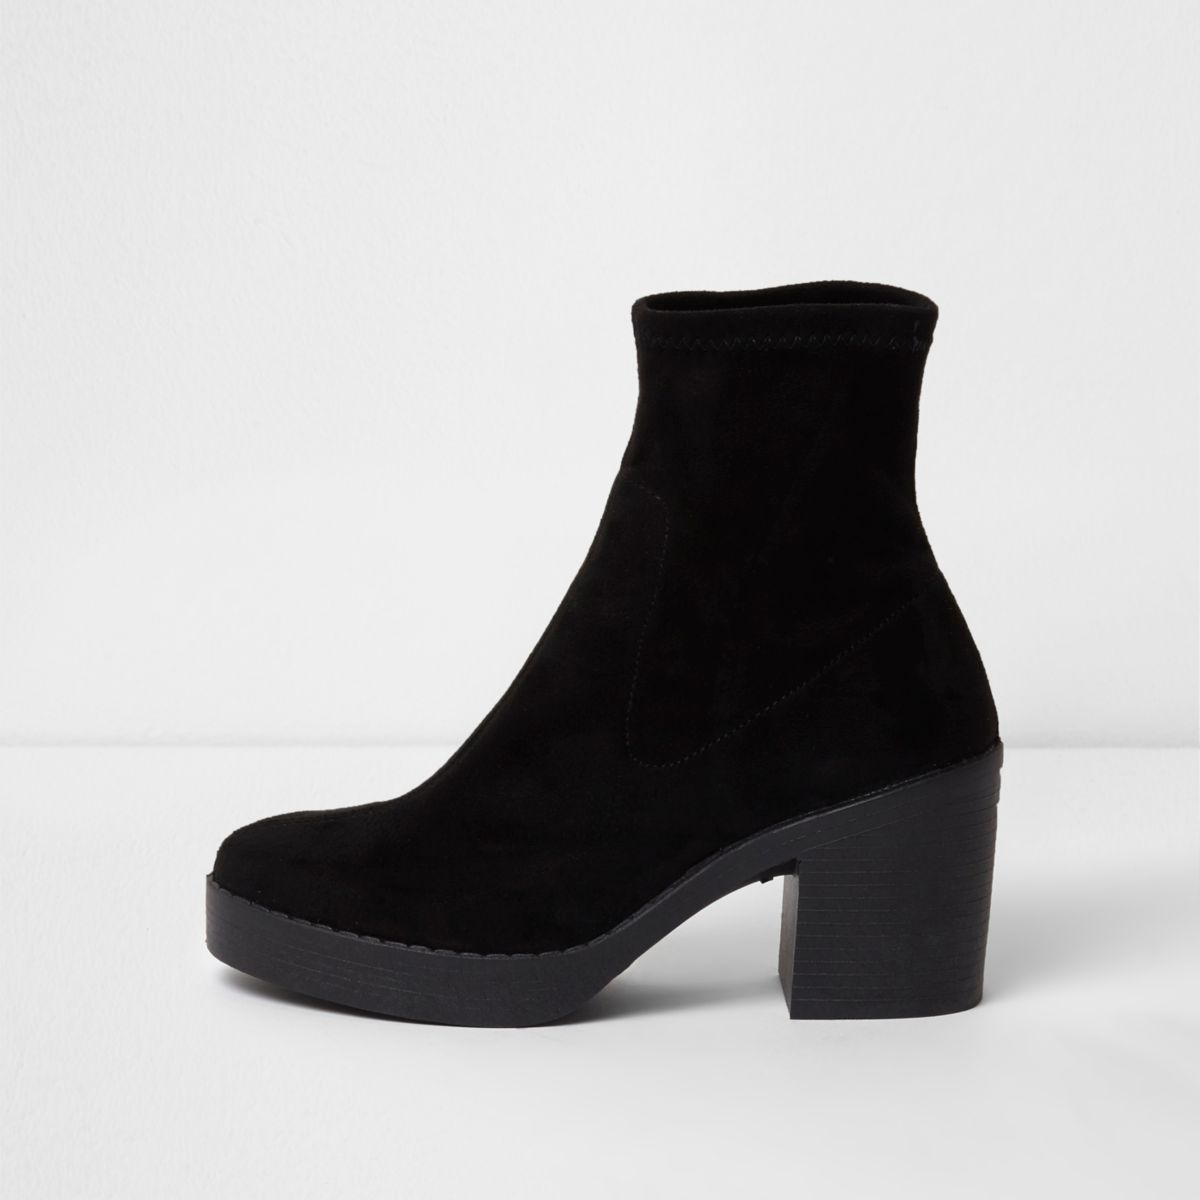 Black chunky block heel sock boots - Shoes & Boots - Sale - women